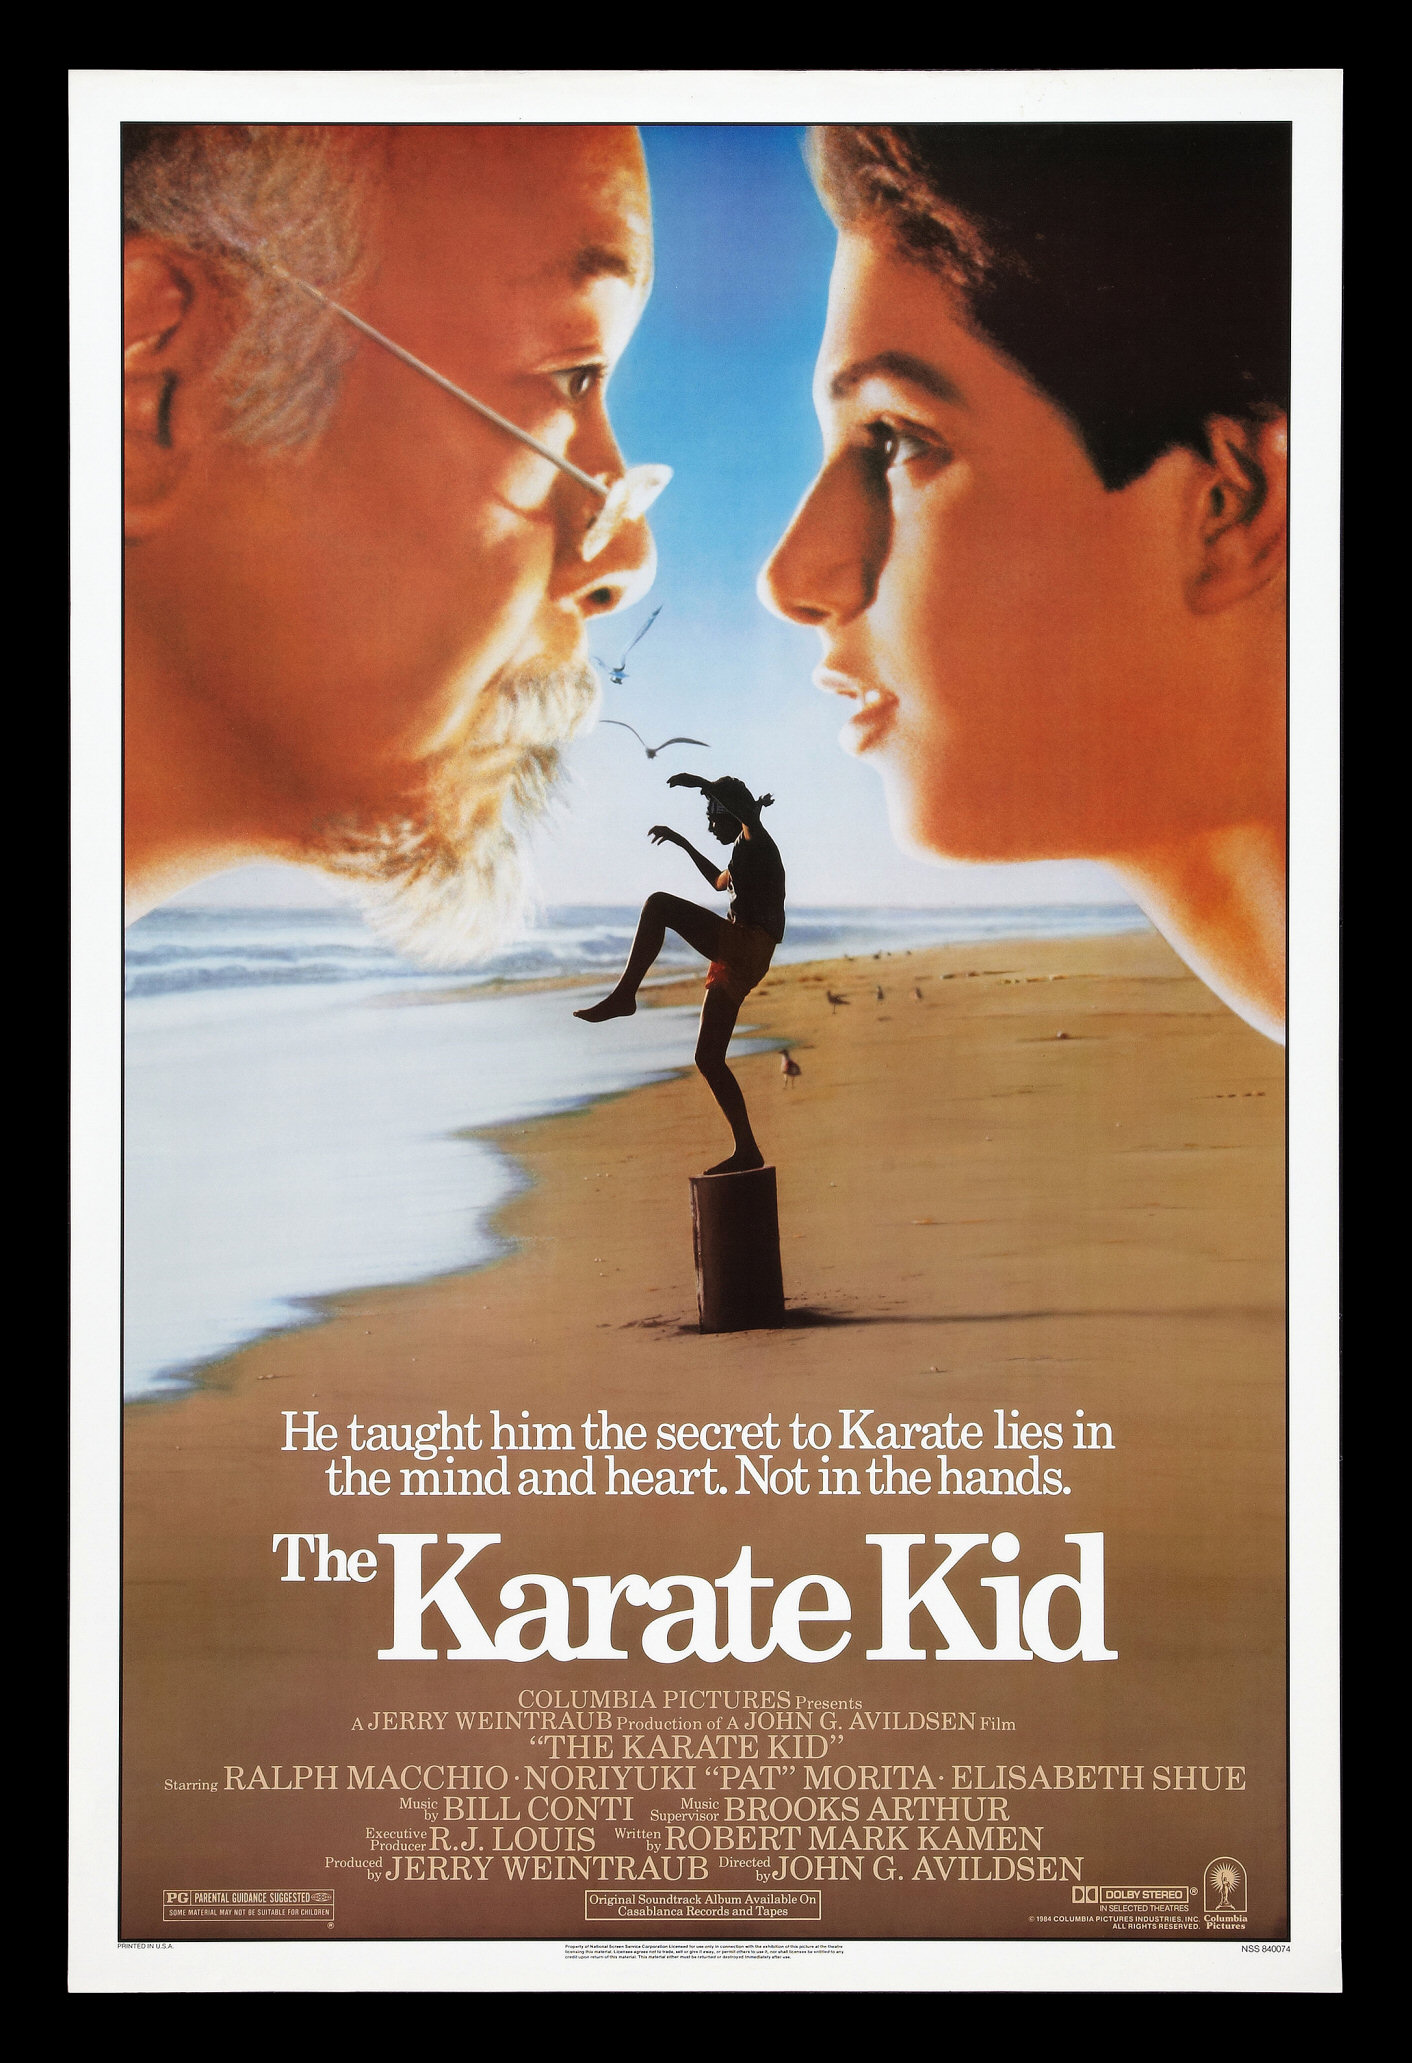 Karate Kid Poster - BTM